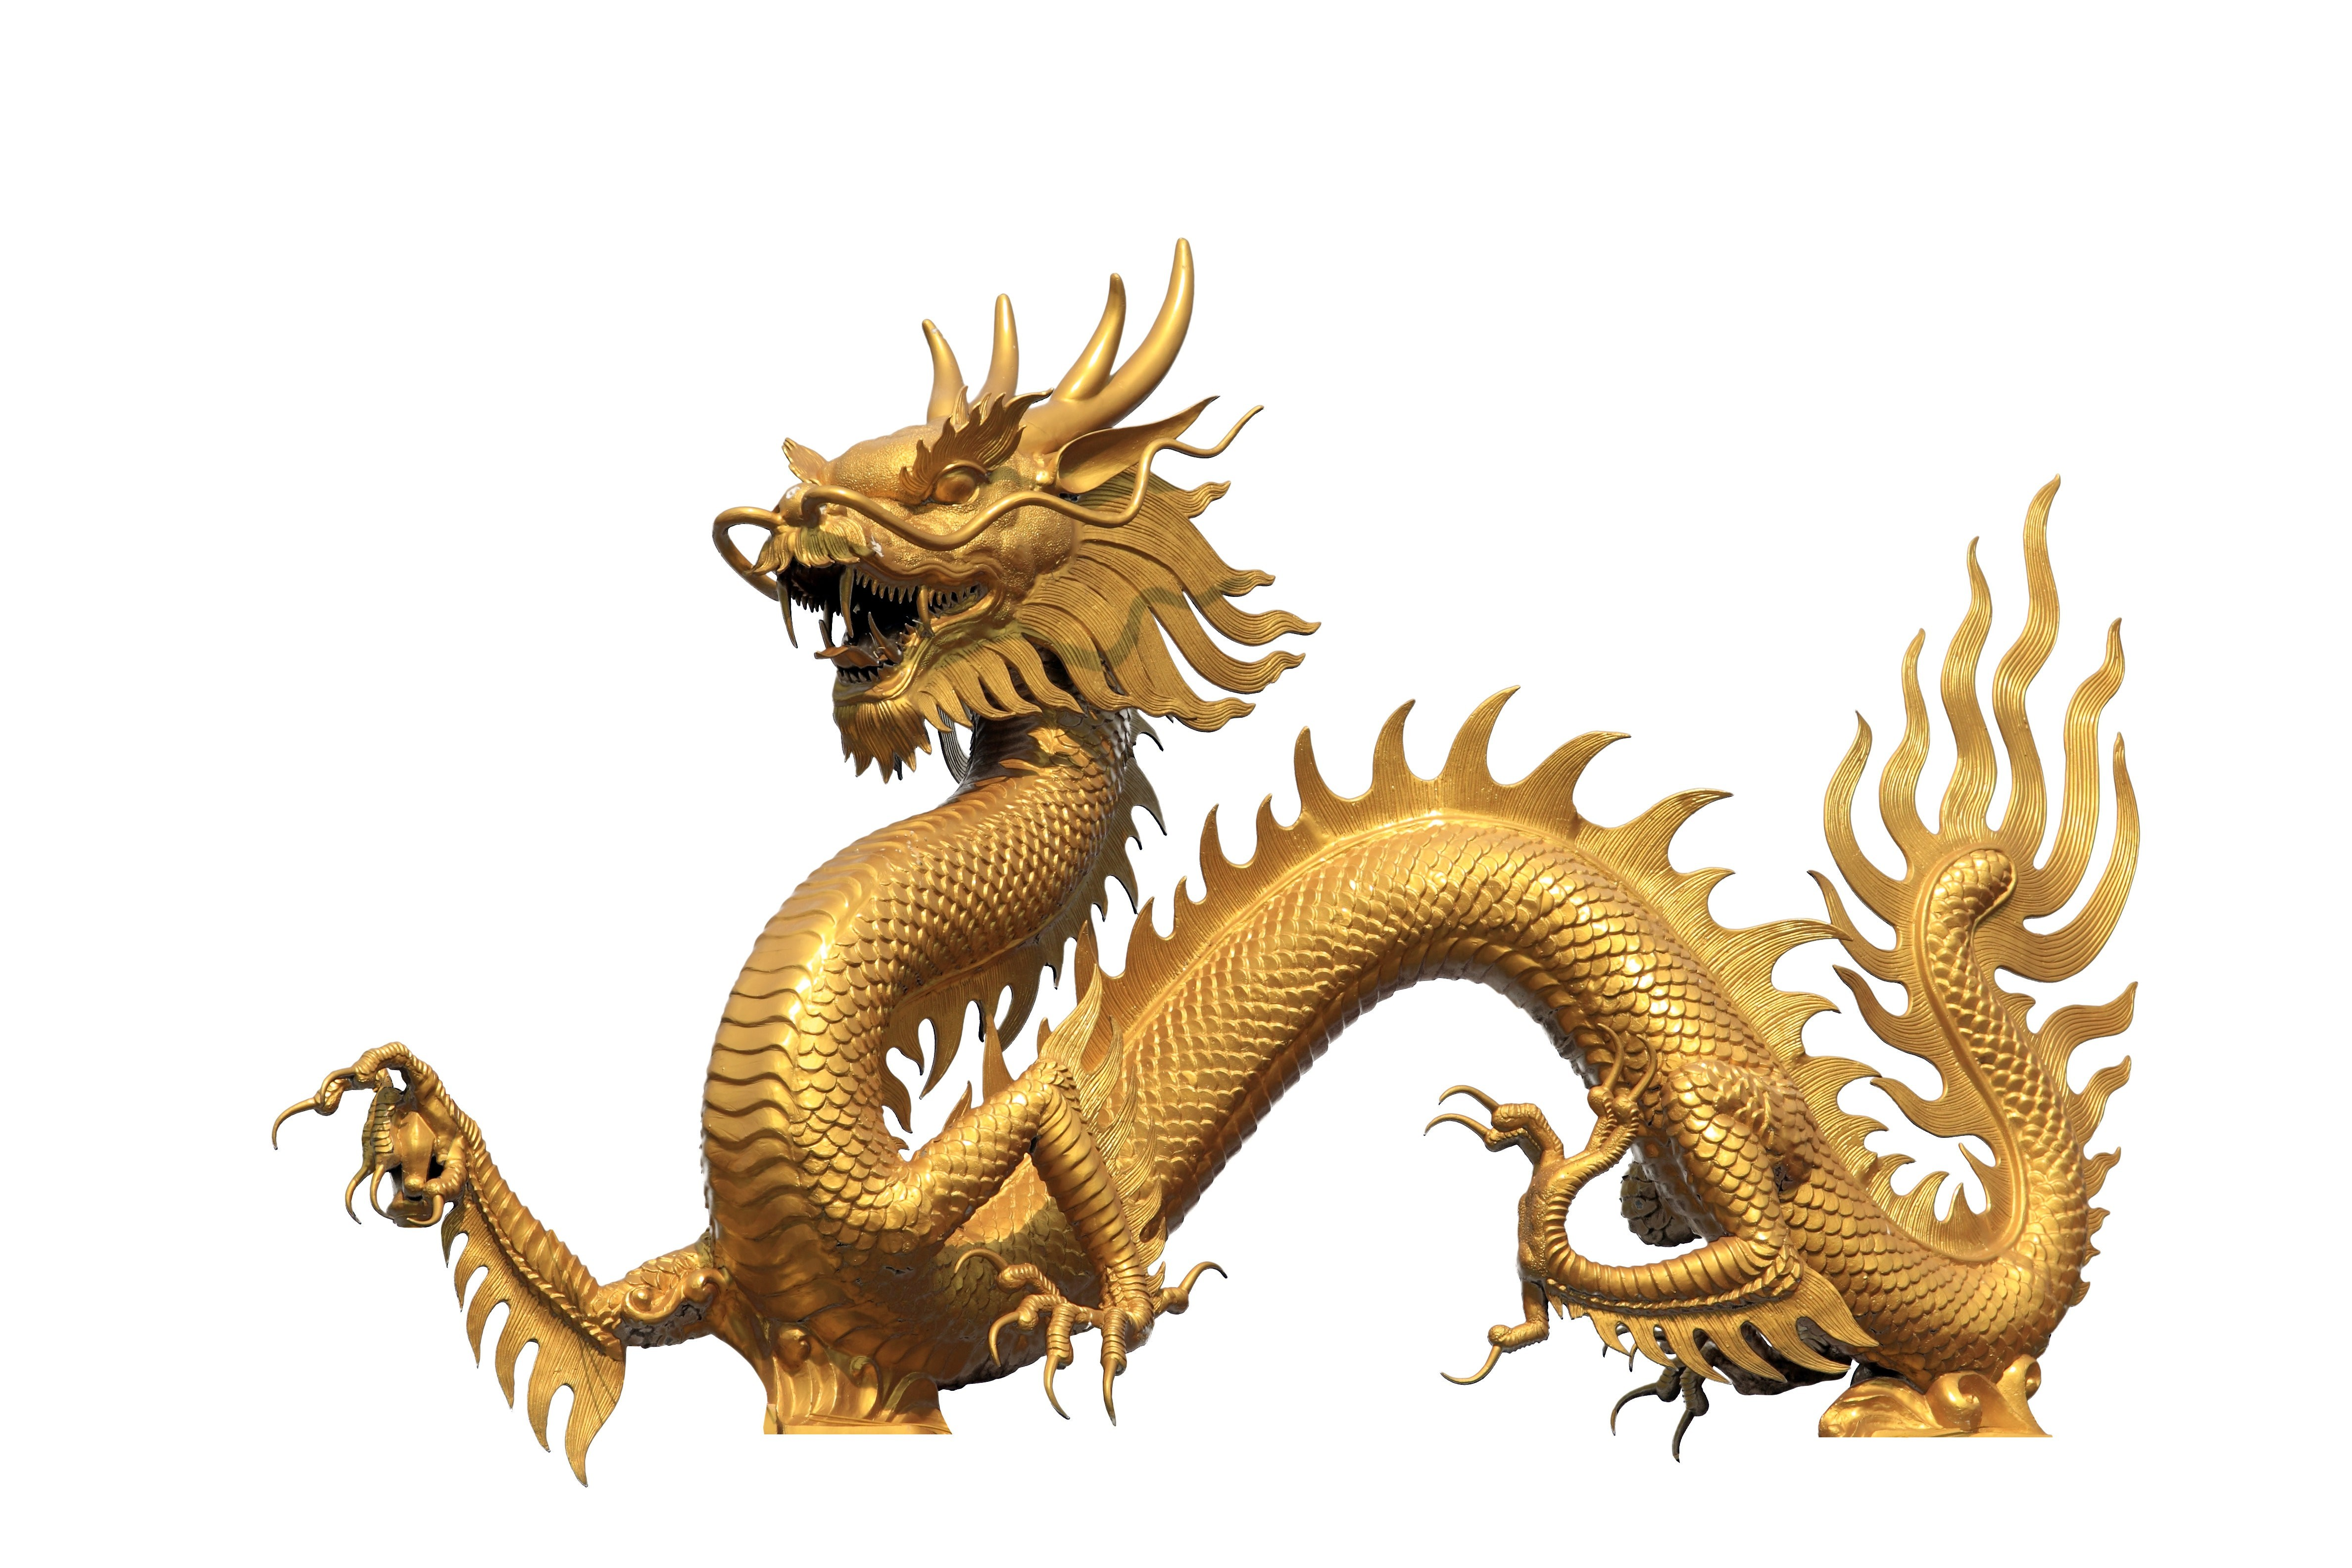 Custom Conjure Chinese Attendant Dragon :: Great Friends With Comfort